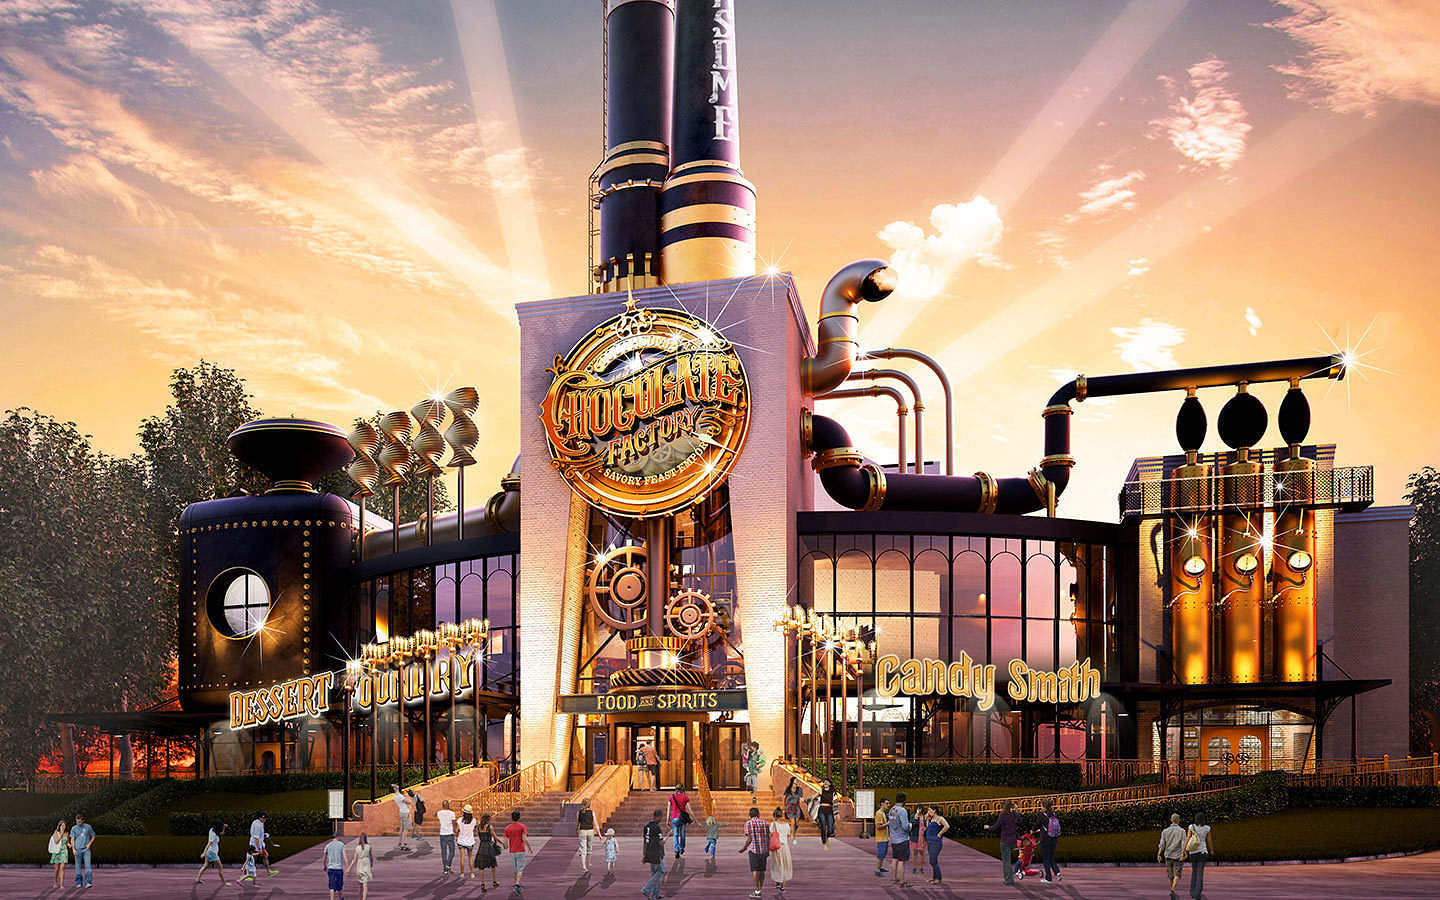 Universal Orlando opens their own chocolate factory later this year